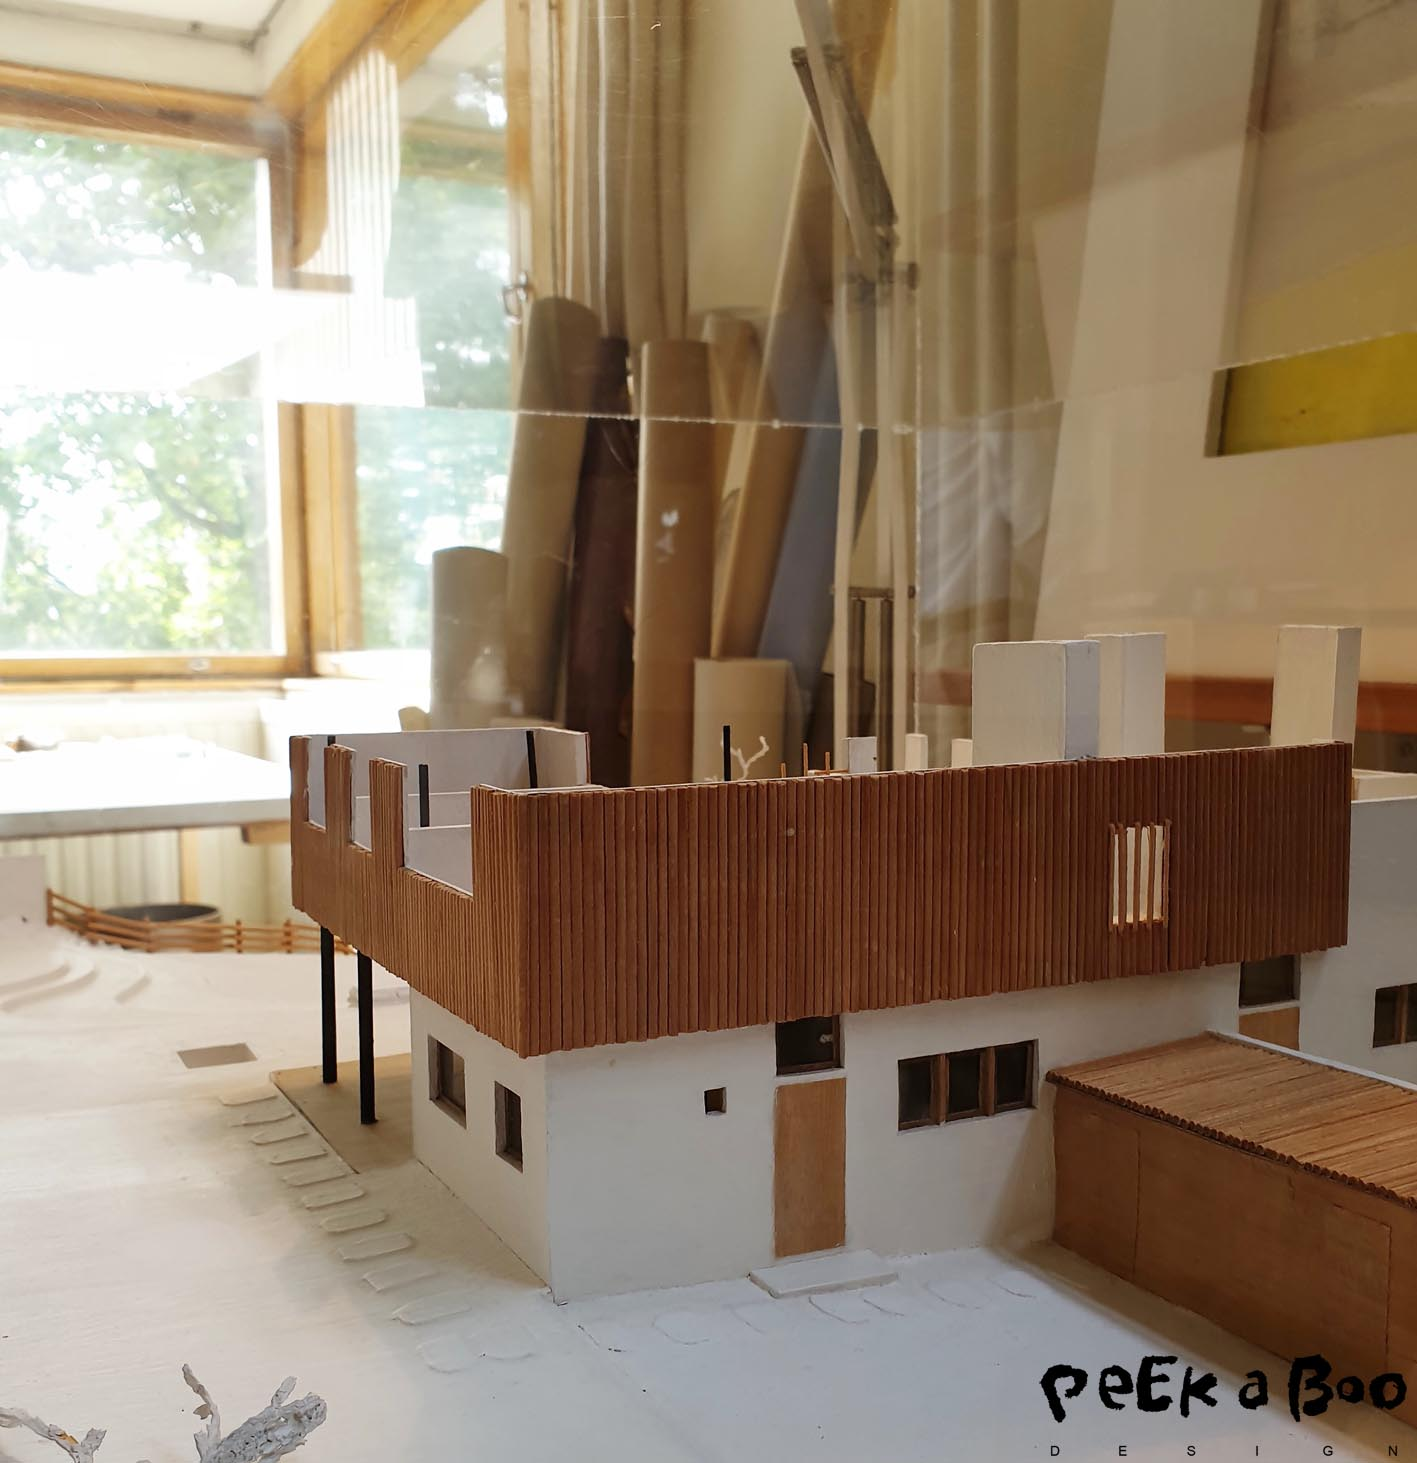 Small models of houses that he designed from his studio.